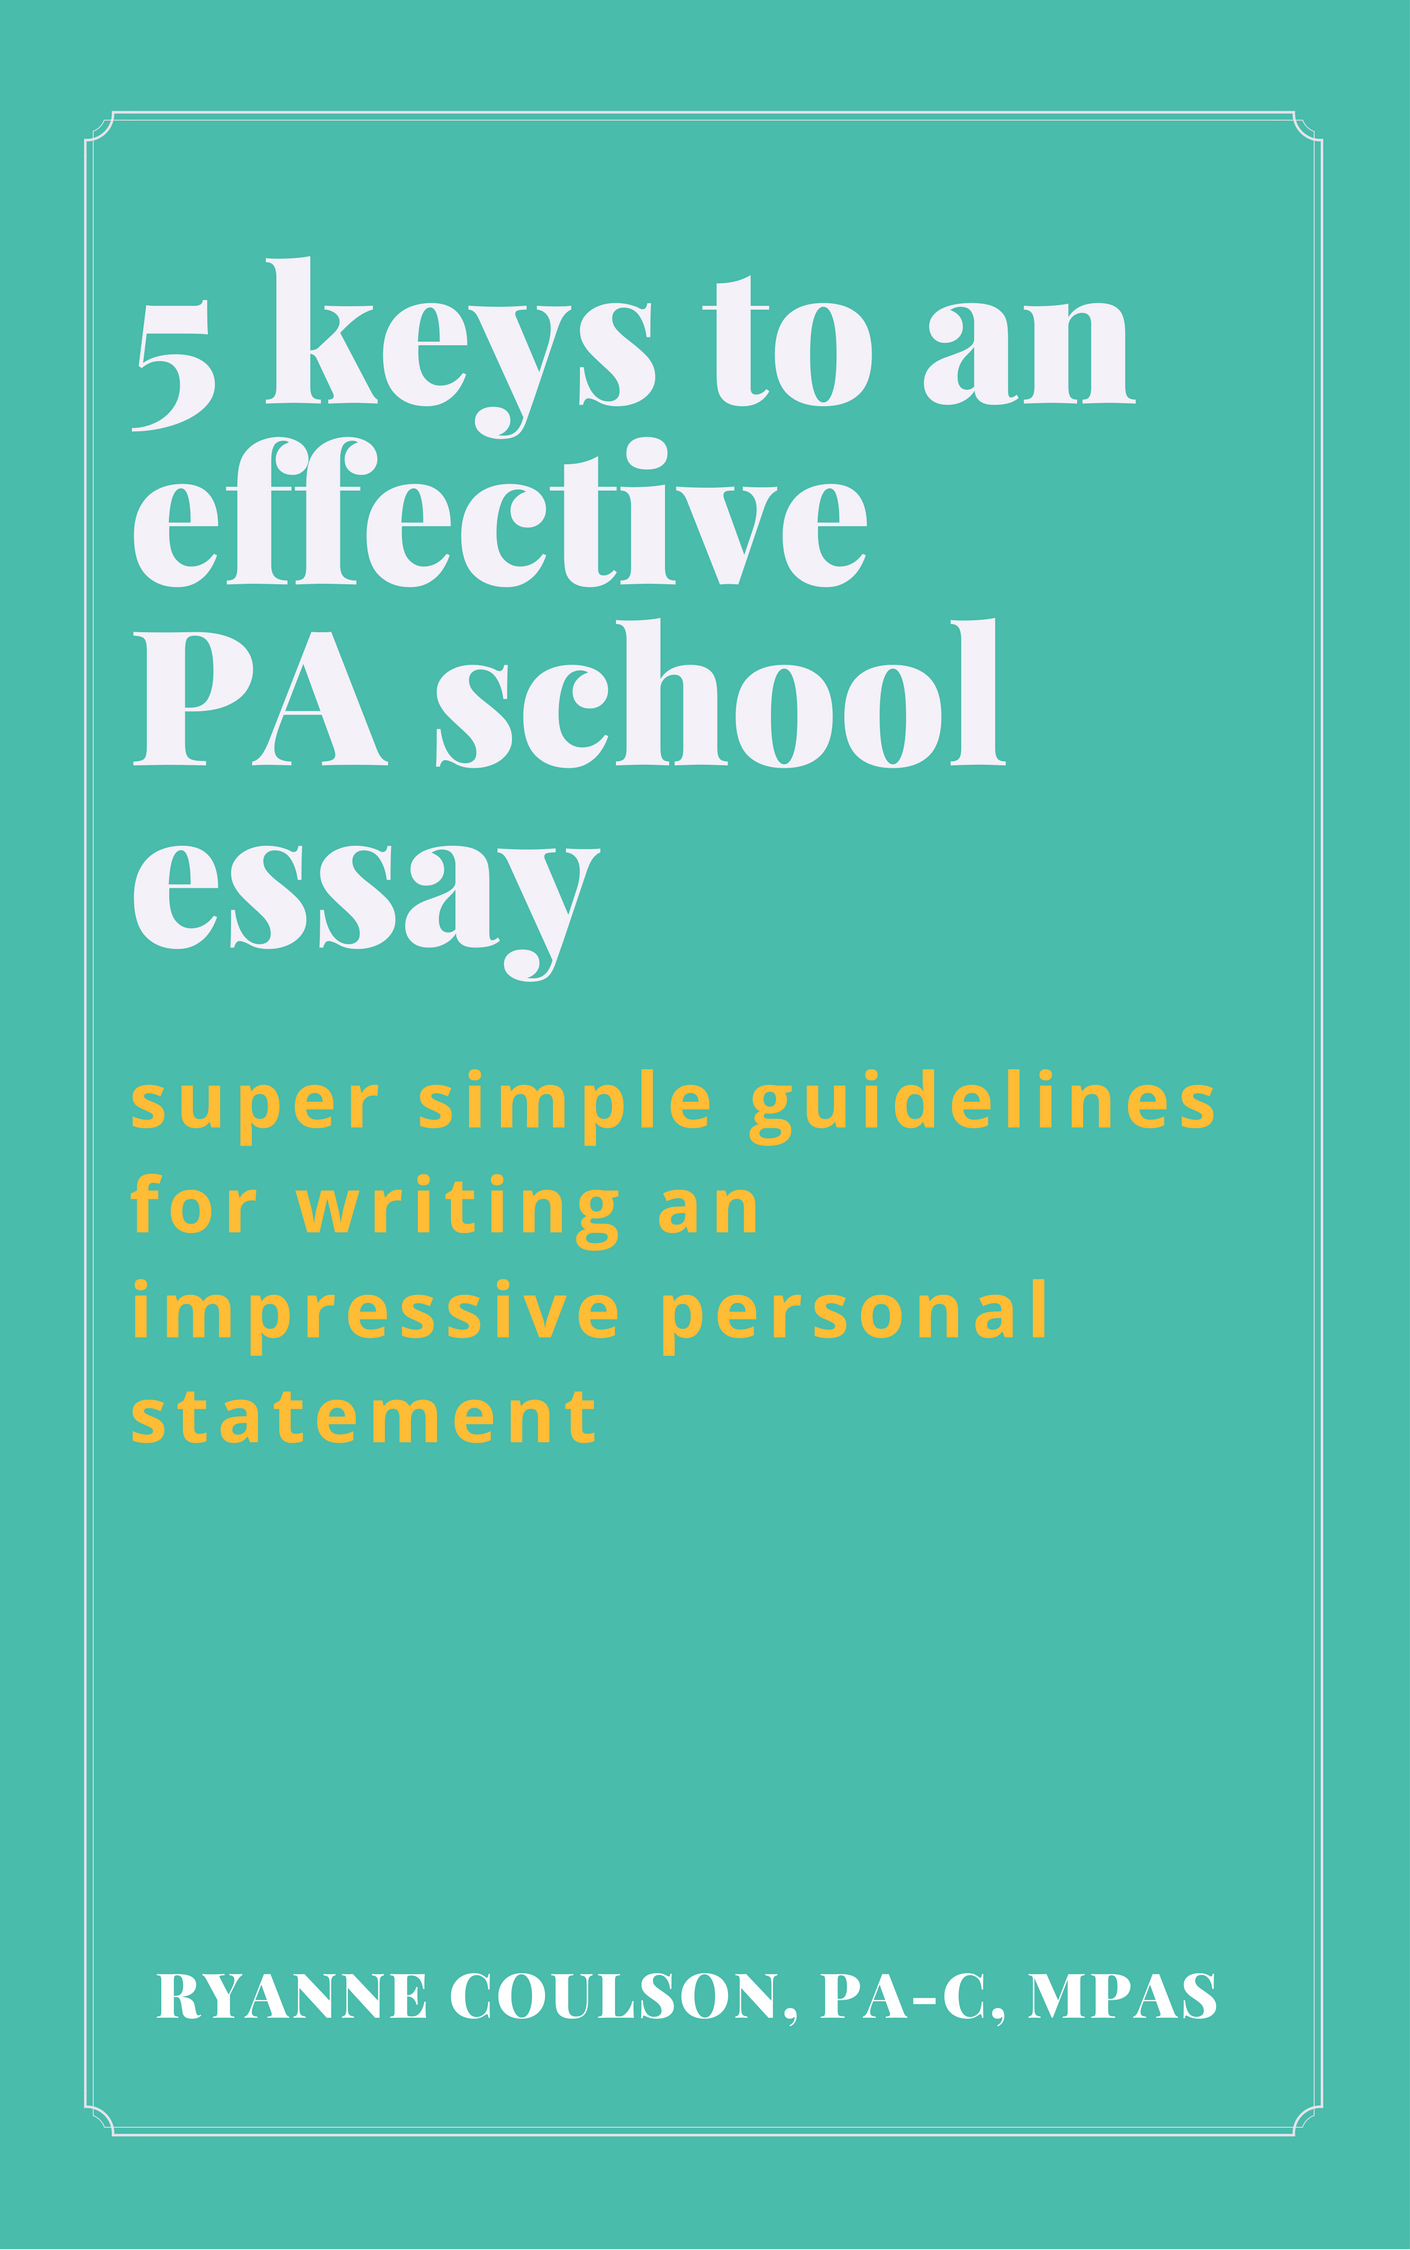 5 Keys to an Effective PA School EssaylBe a Physician Assistant